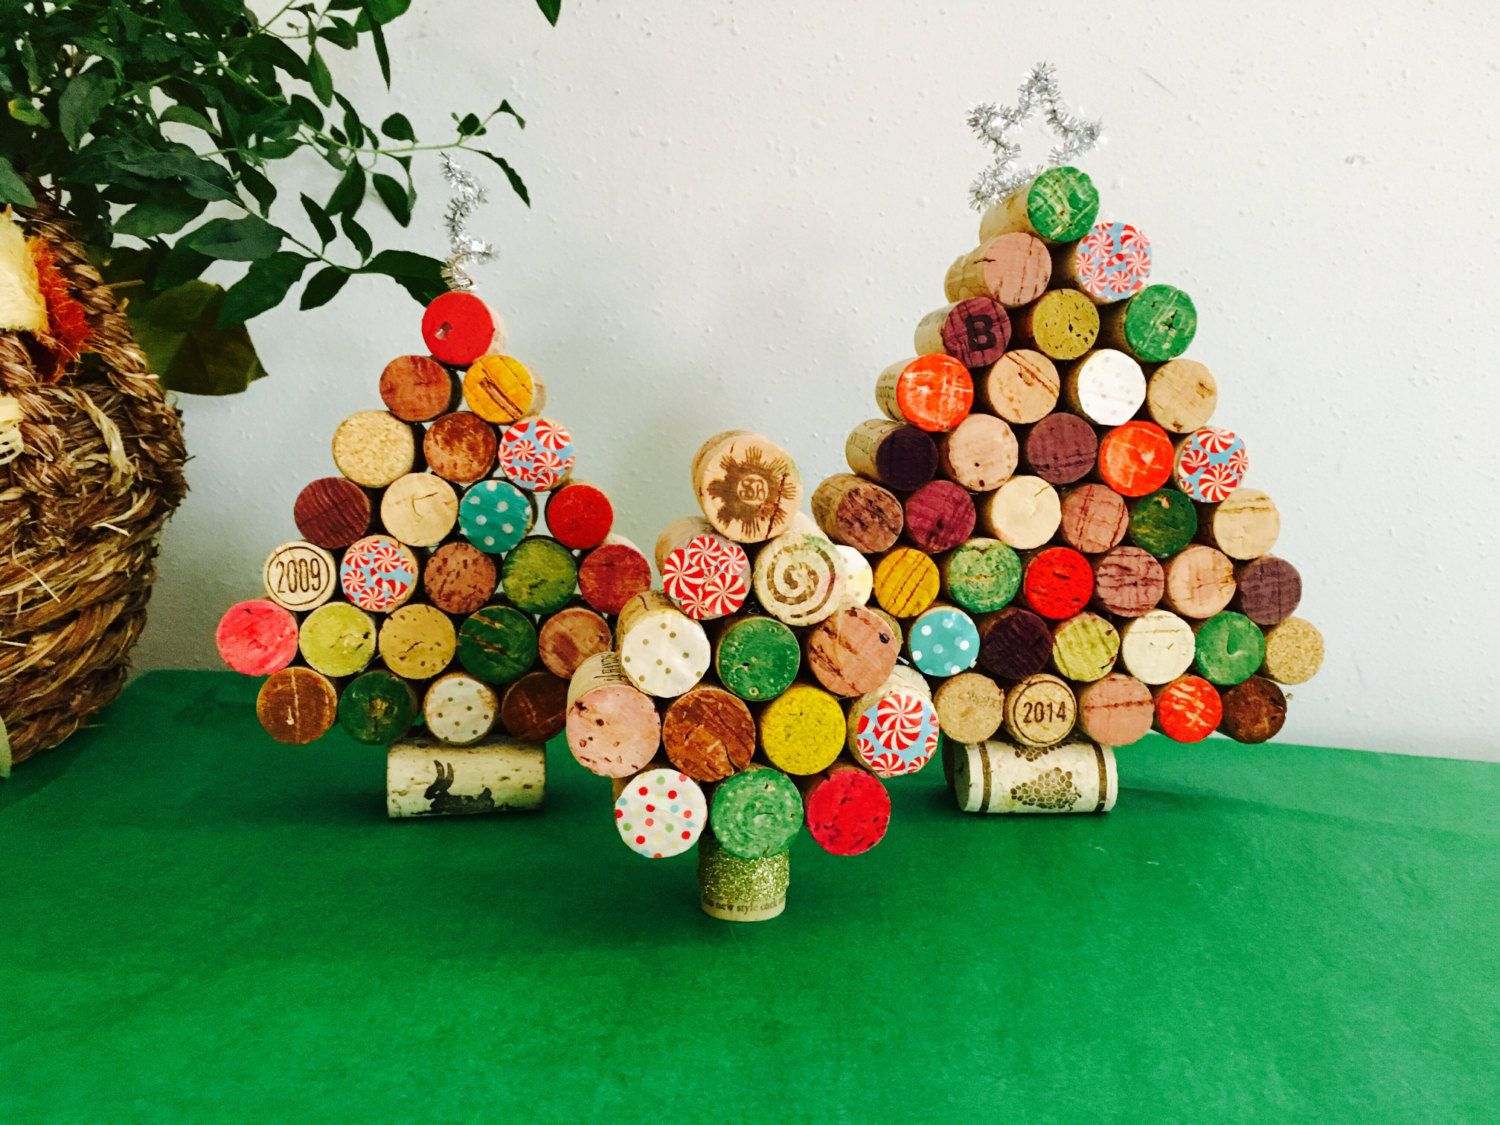 cyber monday sale wine cork christmas tree wine lover holiday decor recycled wine cork tree wine cork wreath holiday decoration by pomjoyfun on etsy